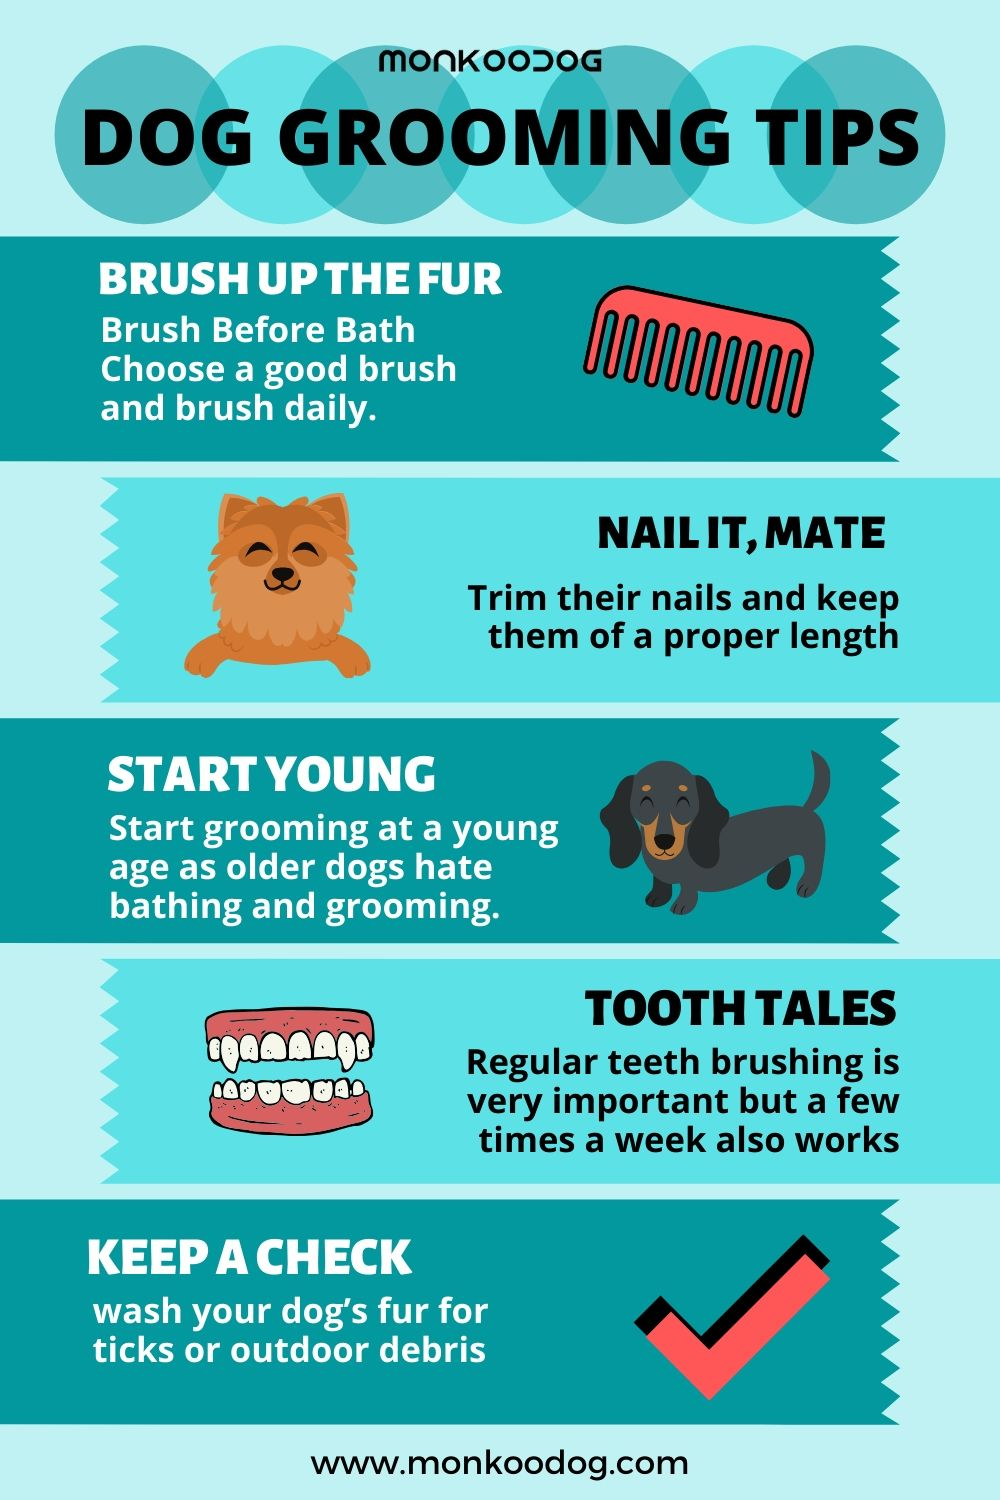 HOW YOU CAN GROOM YOUR DOG AT HOME?